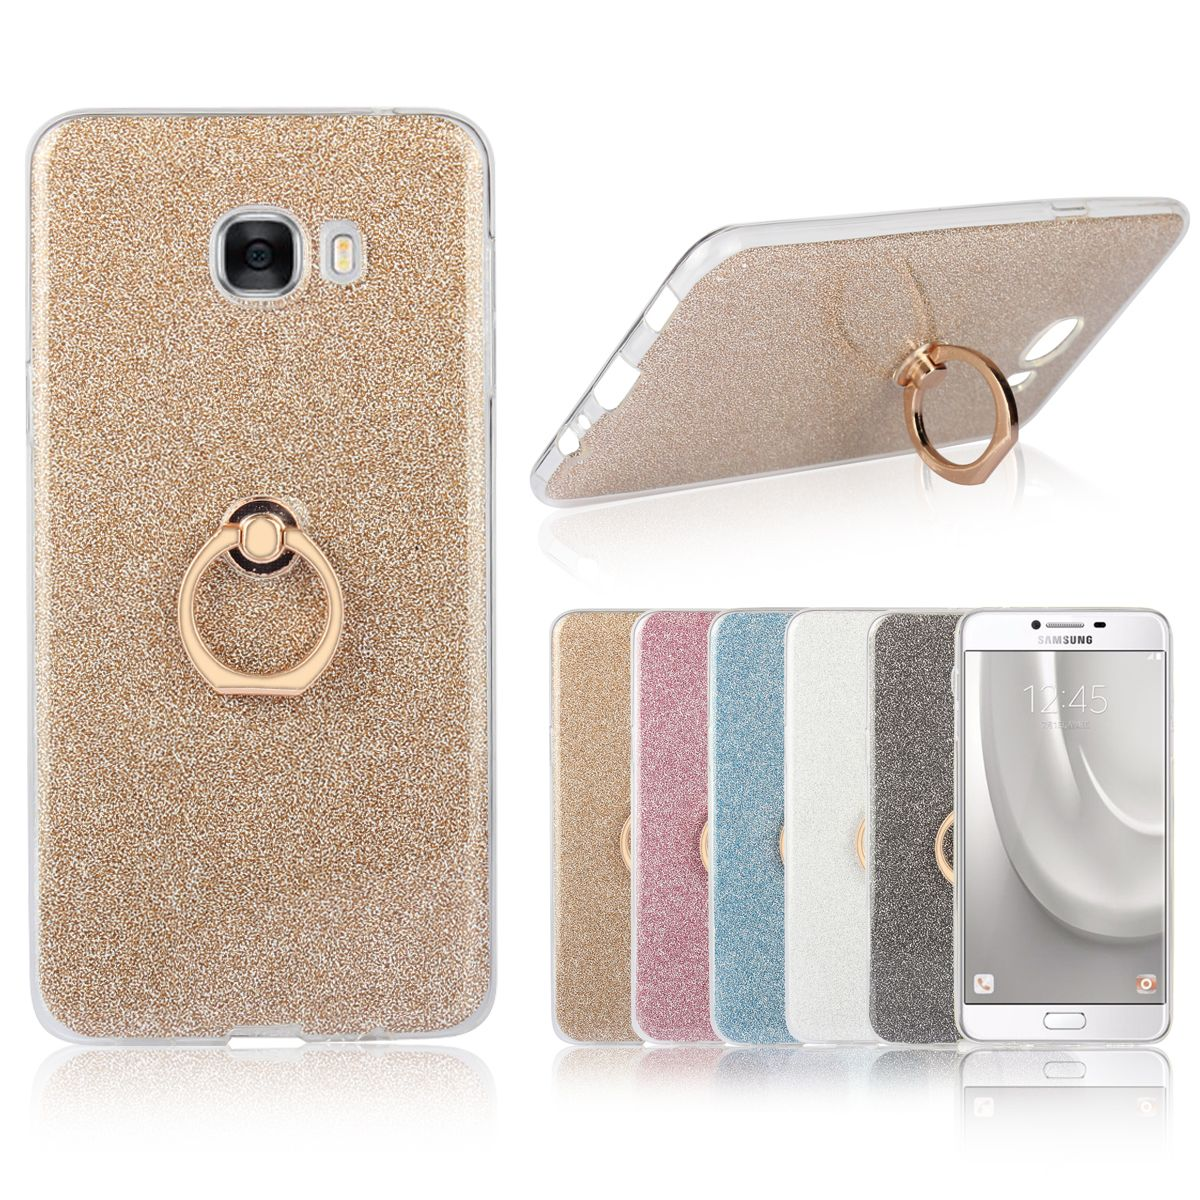 C5/C7 Ring Frame Case For Samsung Galaxy C5 C5000 / C7 C7000 Glitter Stickers Silicone TPU Back Cover